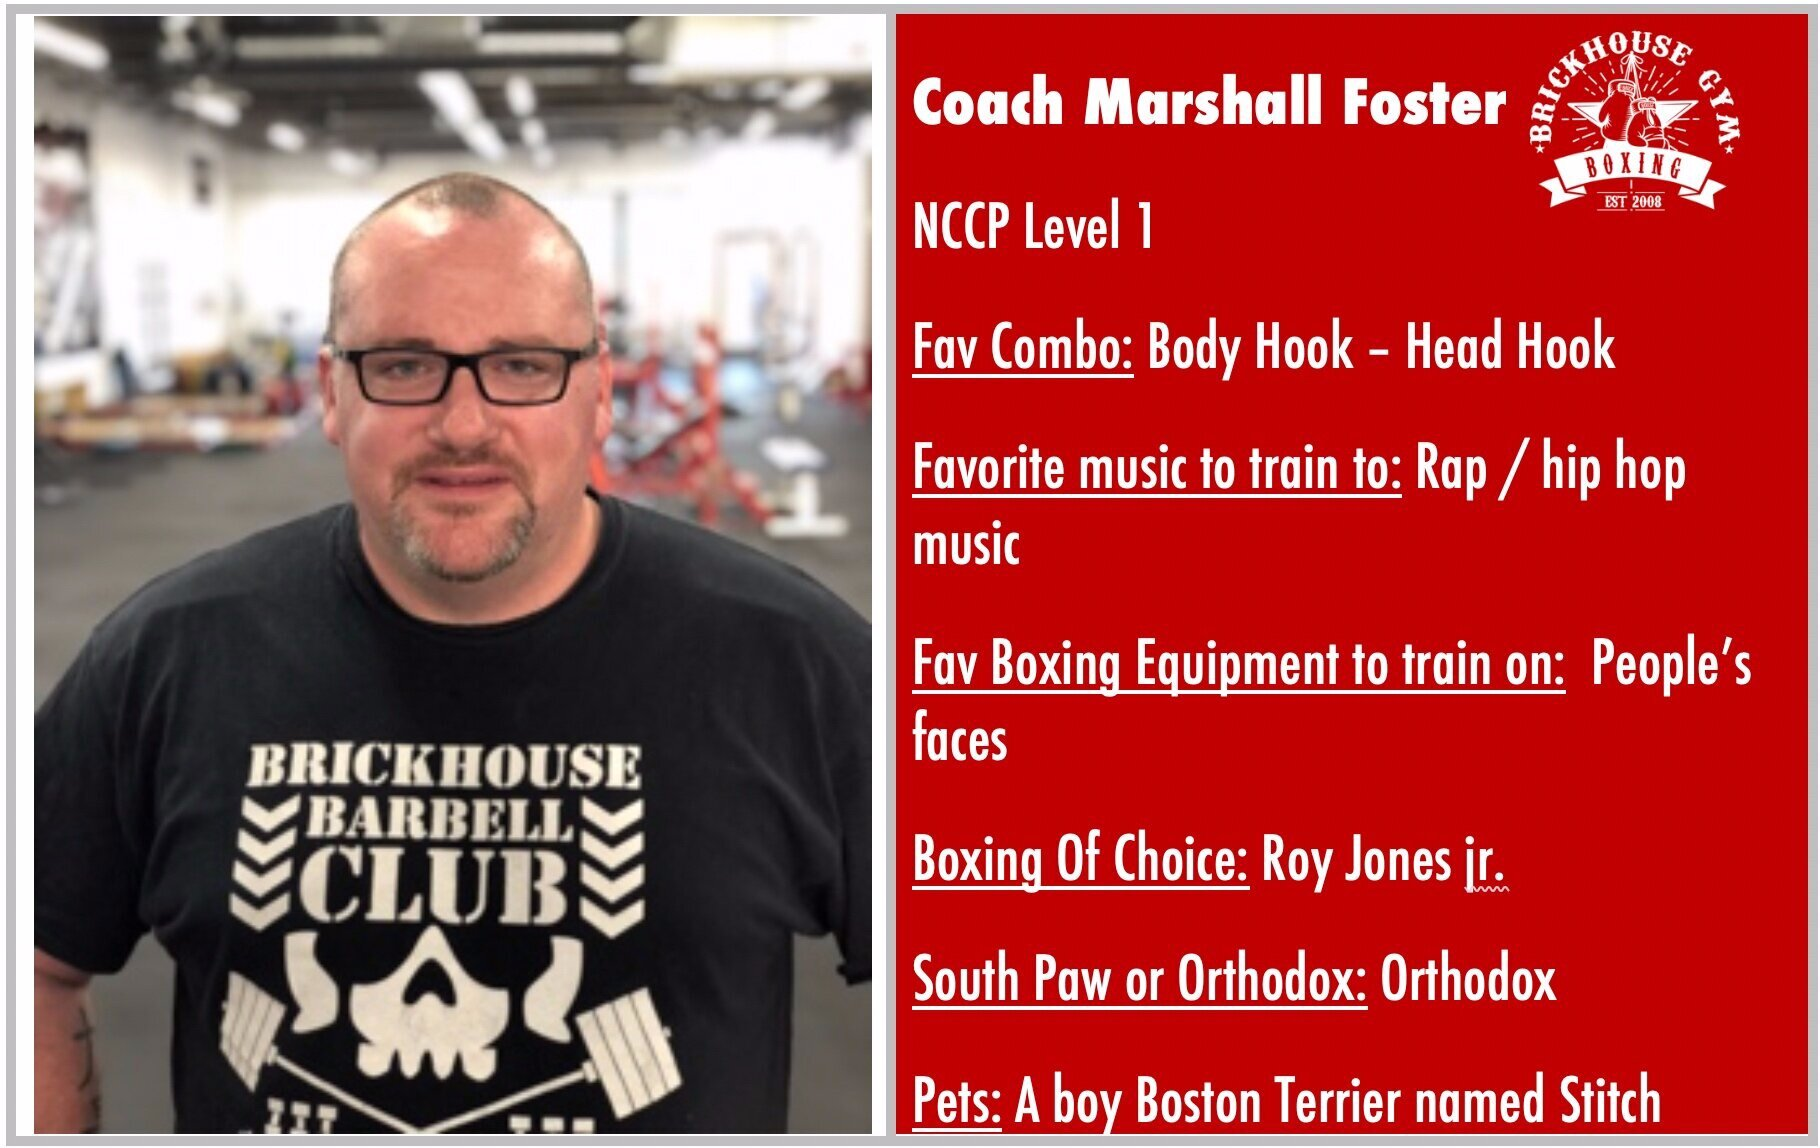 Coach Marshall Foster: Featured Coach of Week 1 September 9 - 15, 2019